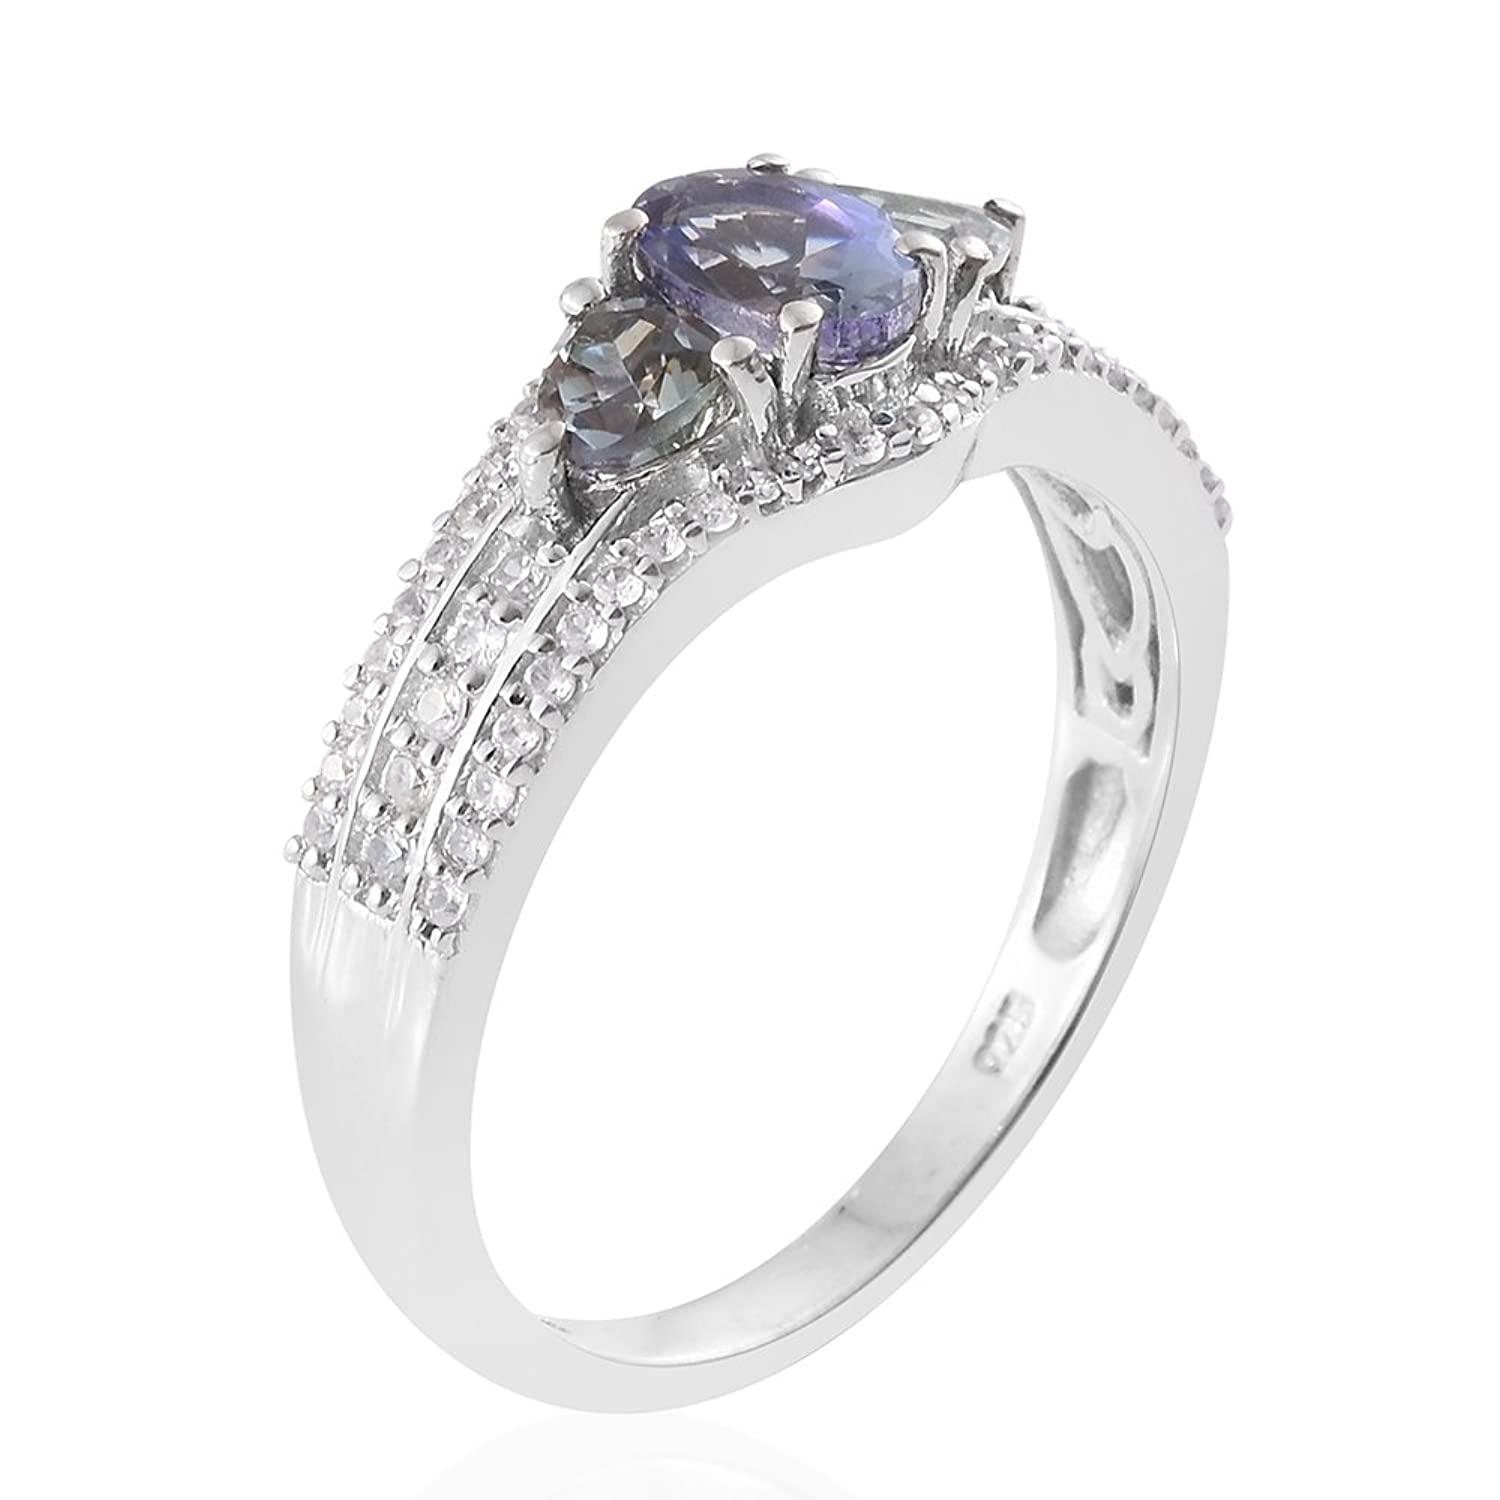 free tanzanite nickel and pin in ring quartz size platinum overlay sterling peacock silver over